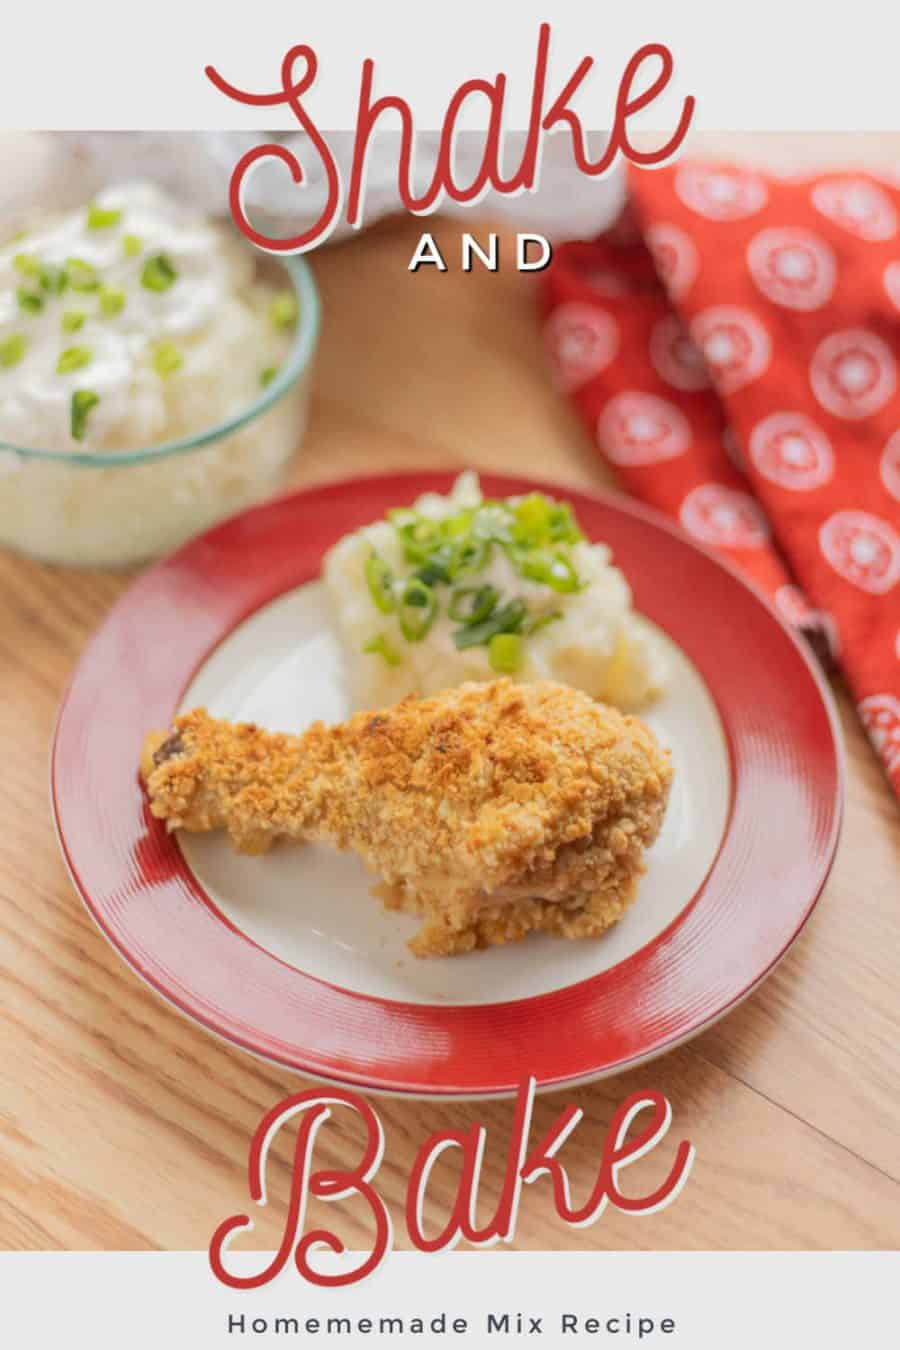 Easy Homemade Shake And Bake Chicken Mix For The Crunchiest Chicken